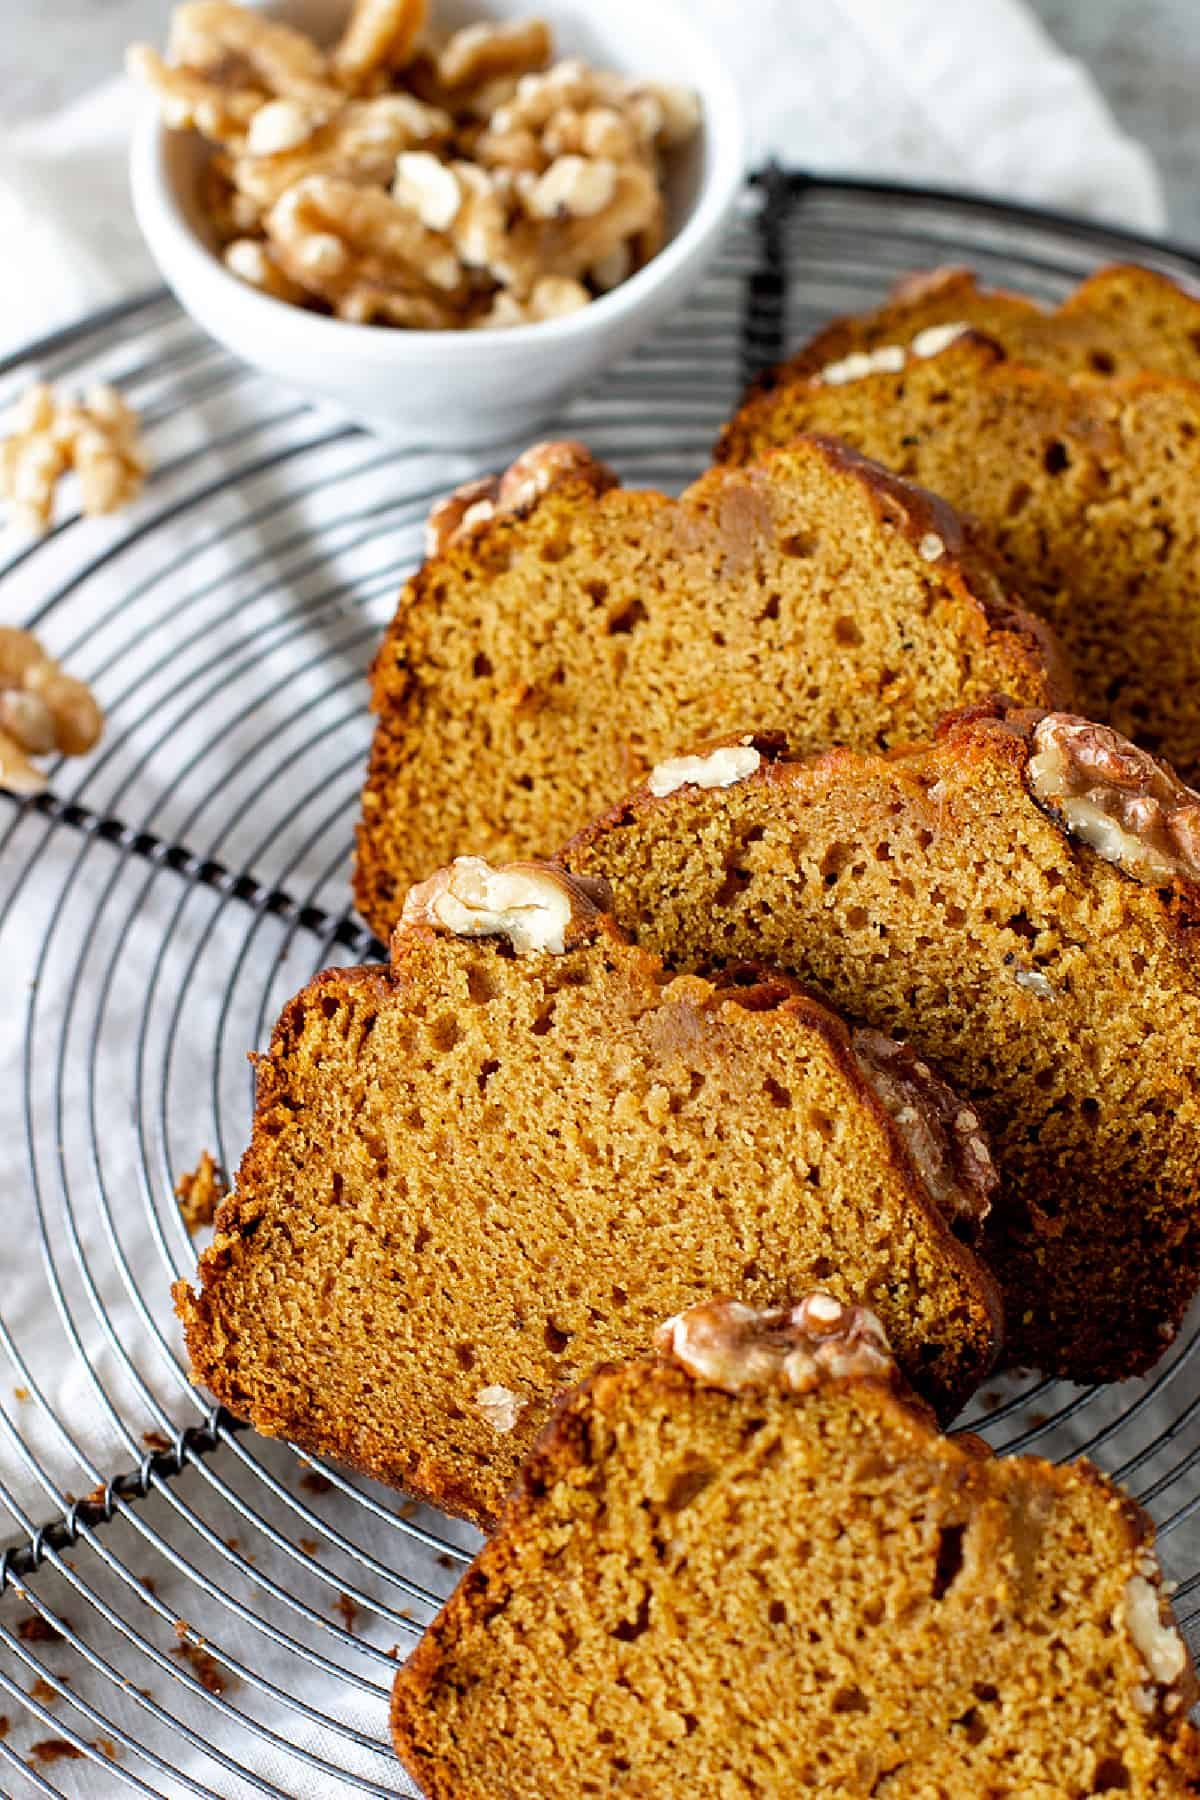 Five slices of pumpkin bread on round wire rack, small white bowl with walnuts, white cloth underneath